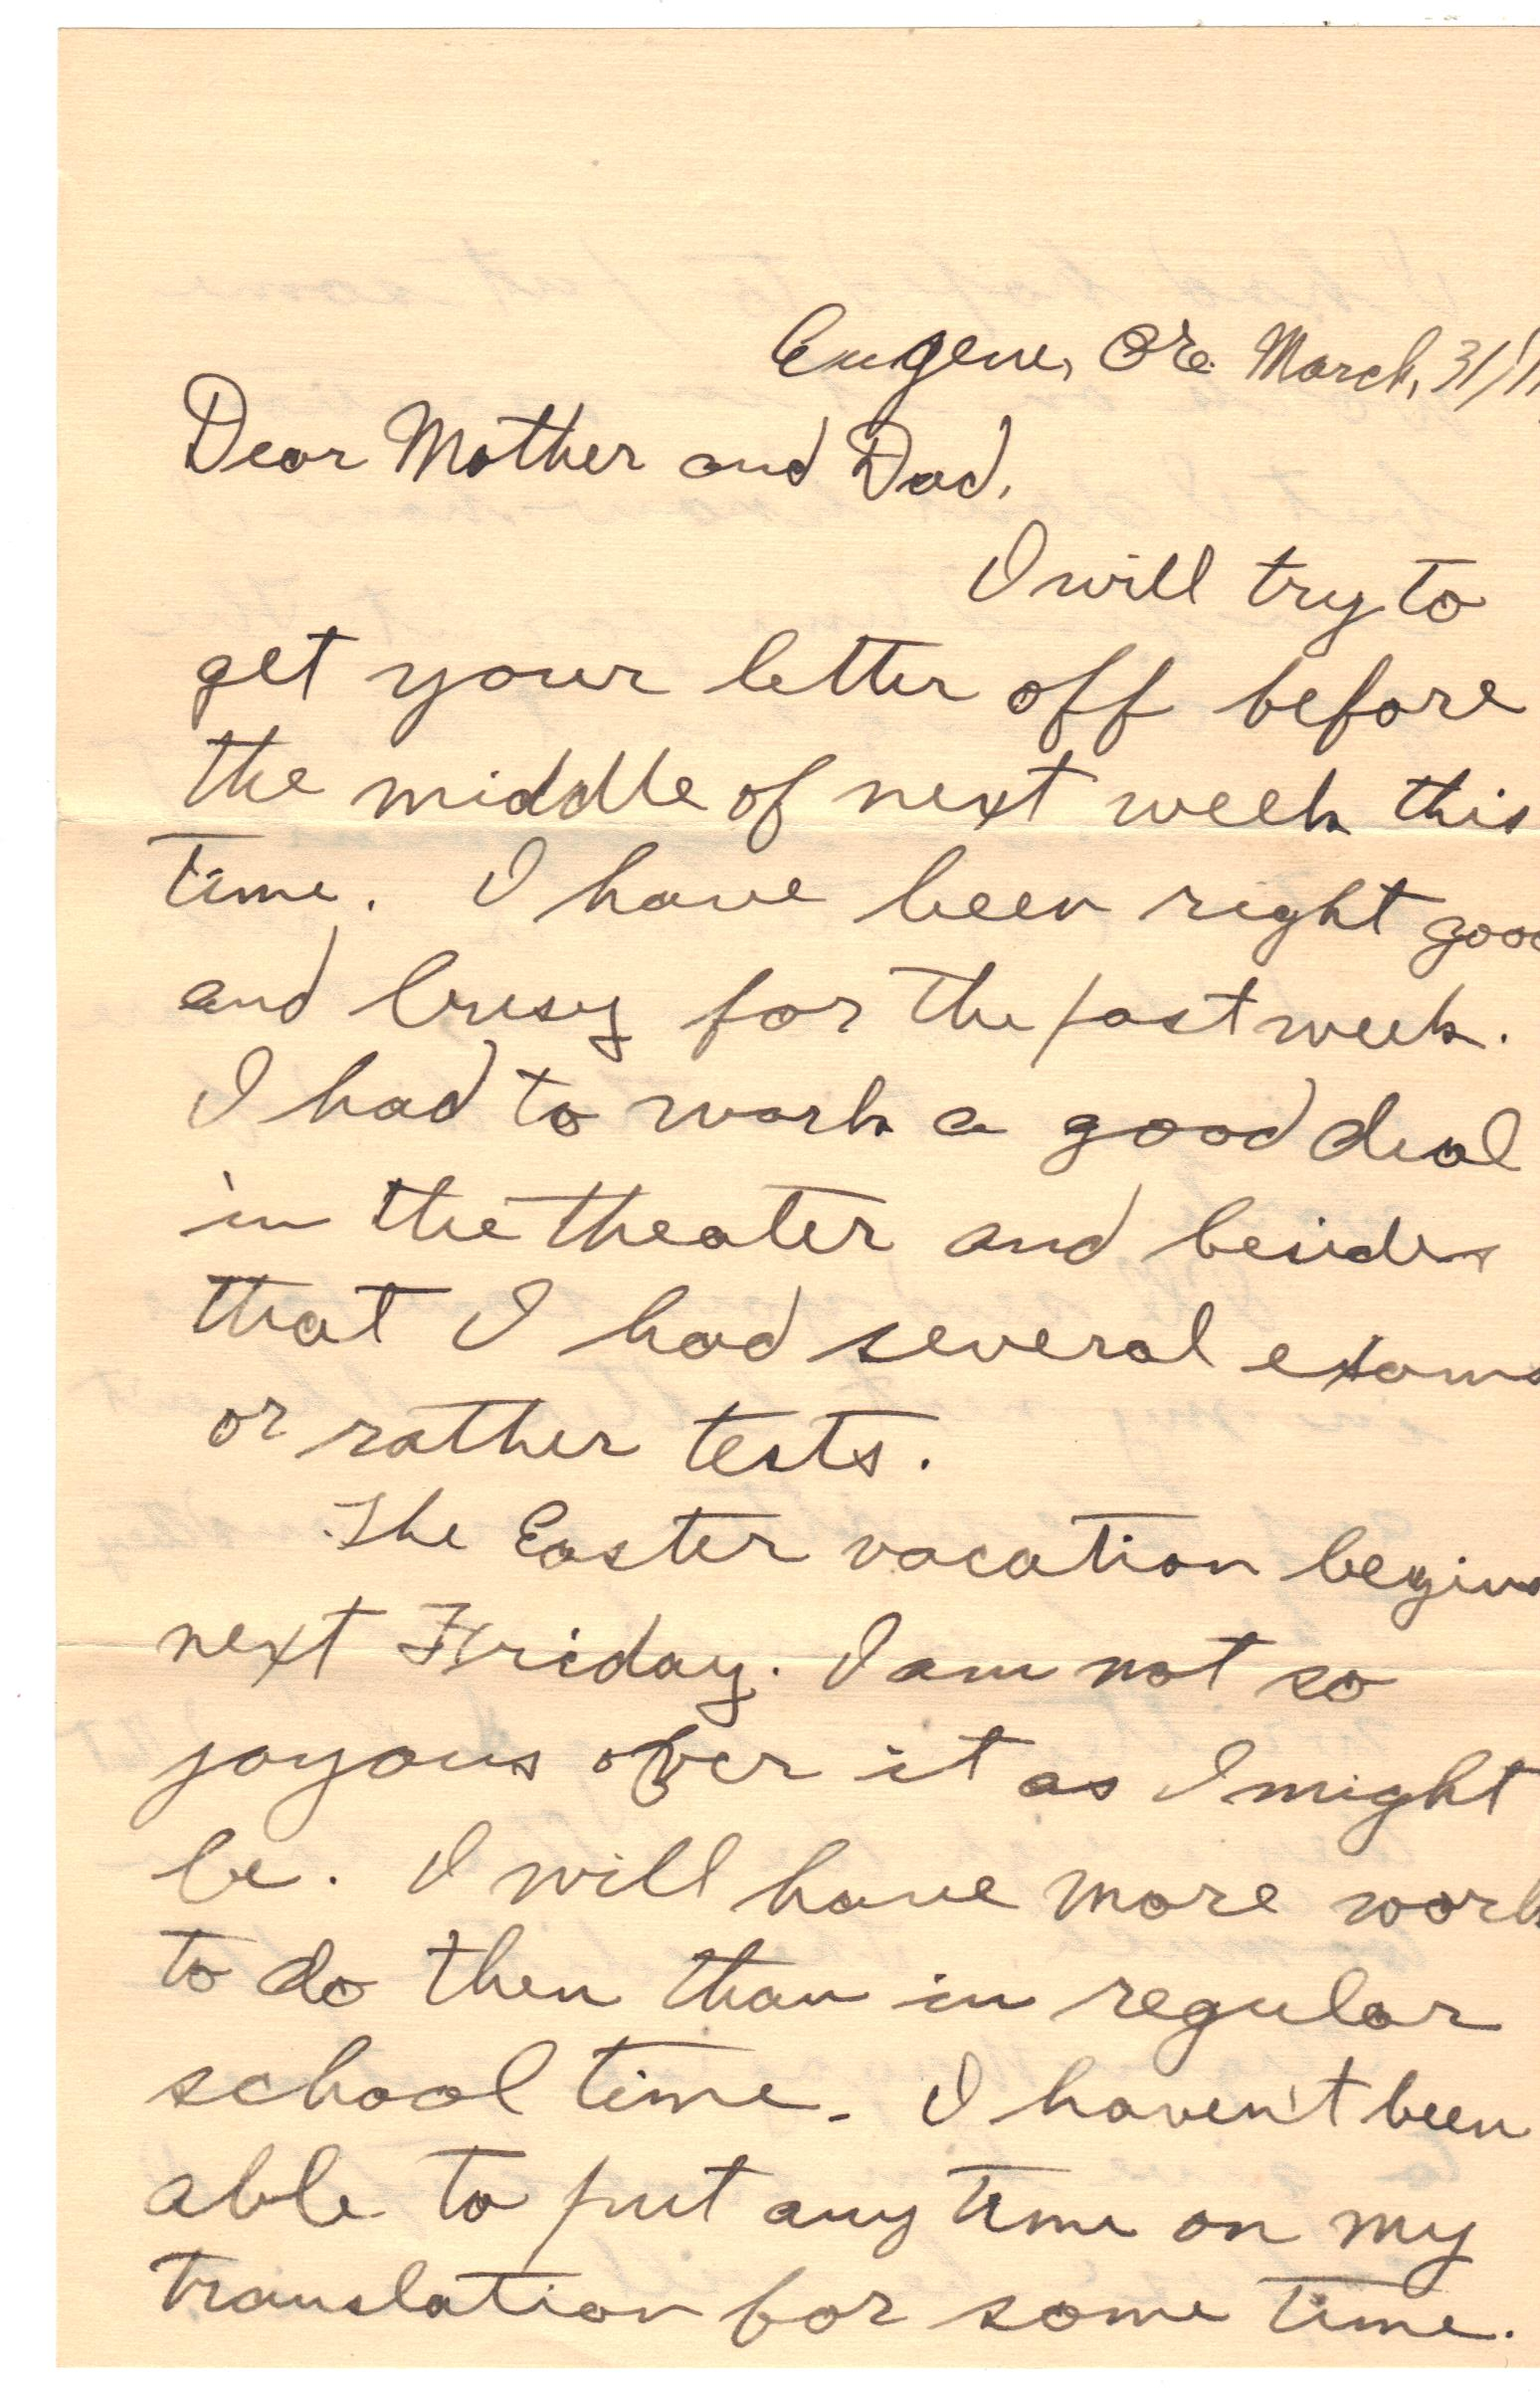 children in the 1800s essay example Sonya writes an essay about children in the early 1800s: children in the early 1800s faced a lot of hard work they usually had to help their families with household chores.